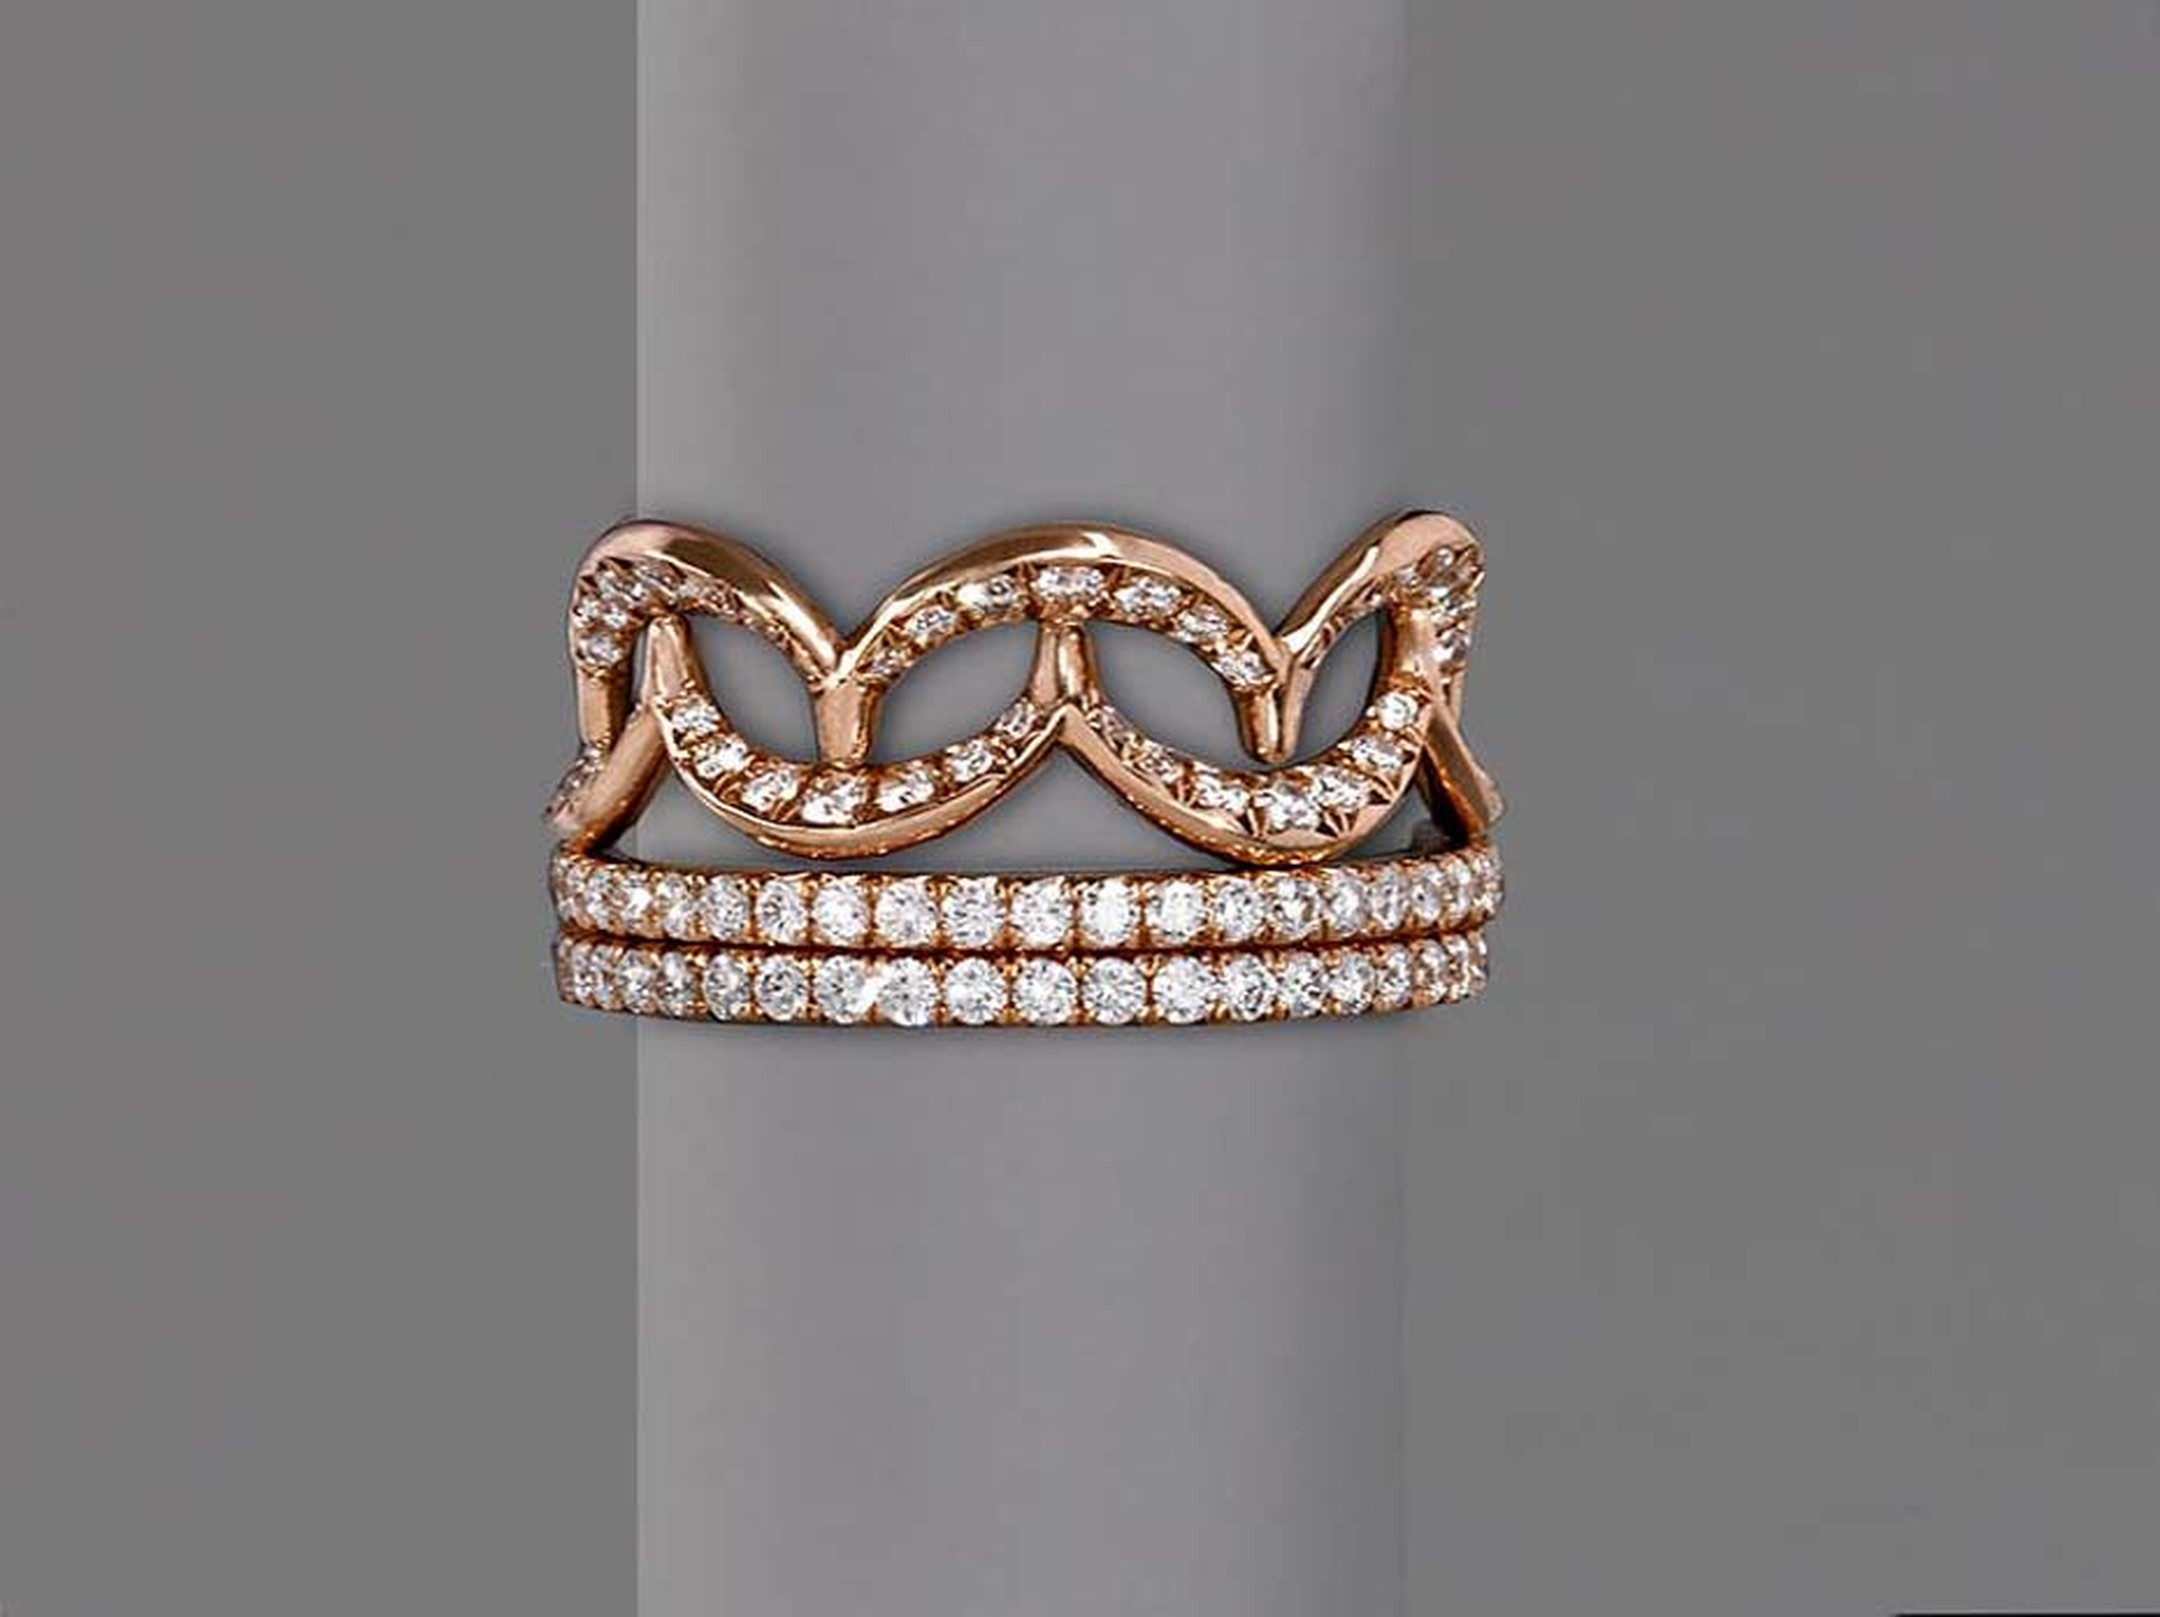 Jado Crown collection interlocking ring in gold with diamonds.